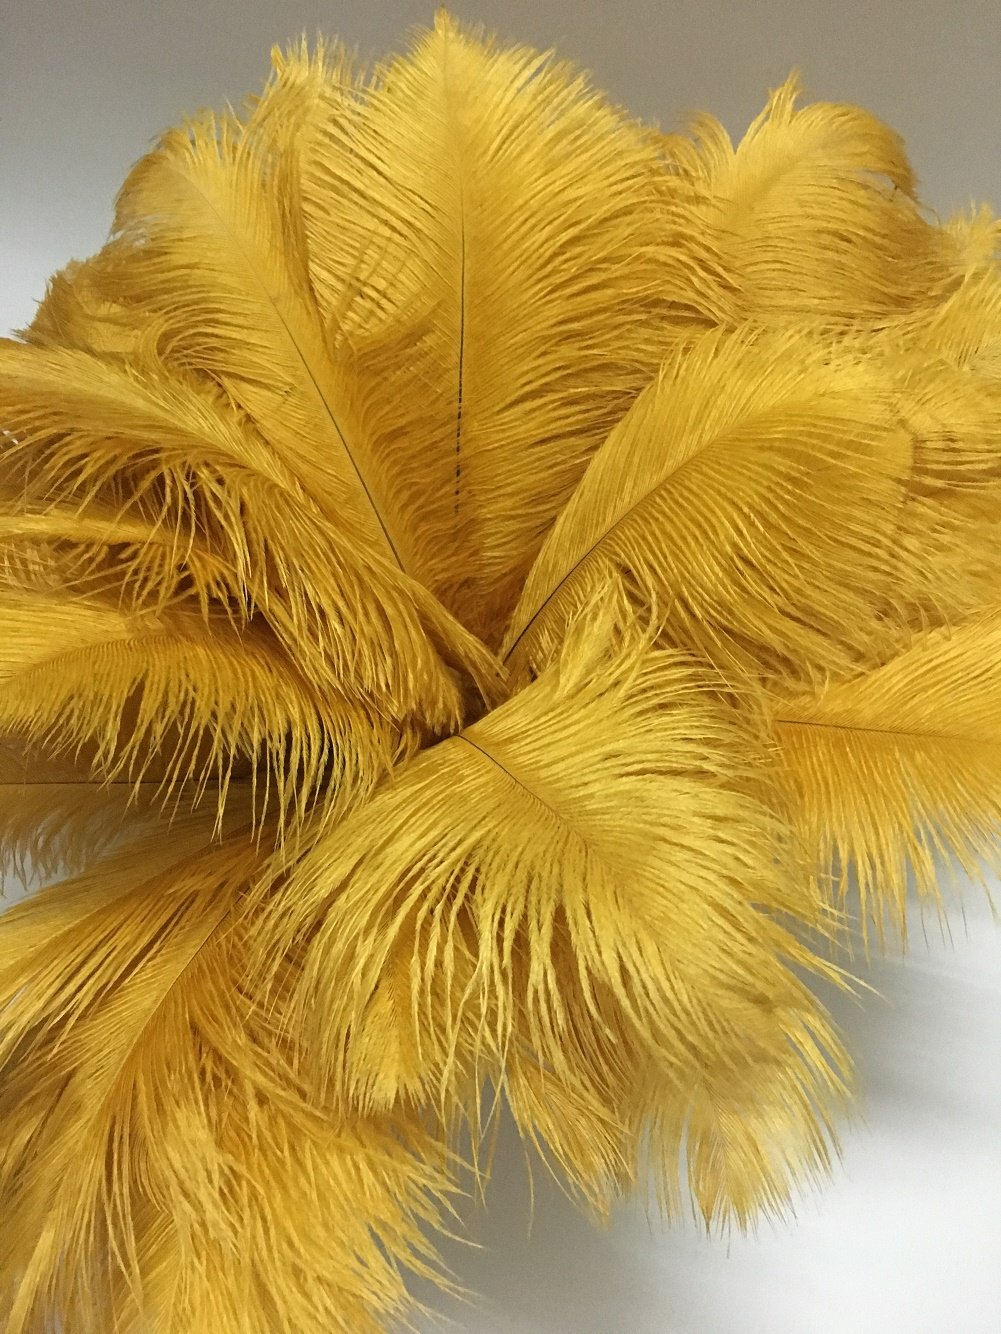 AABABUY 200pcs Ostrich Feathers 12-14inch(30-35cm) for Home Wedding Party Decoration (Gold) by Aababuy